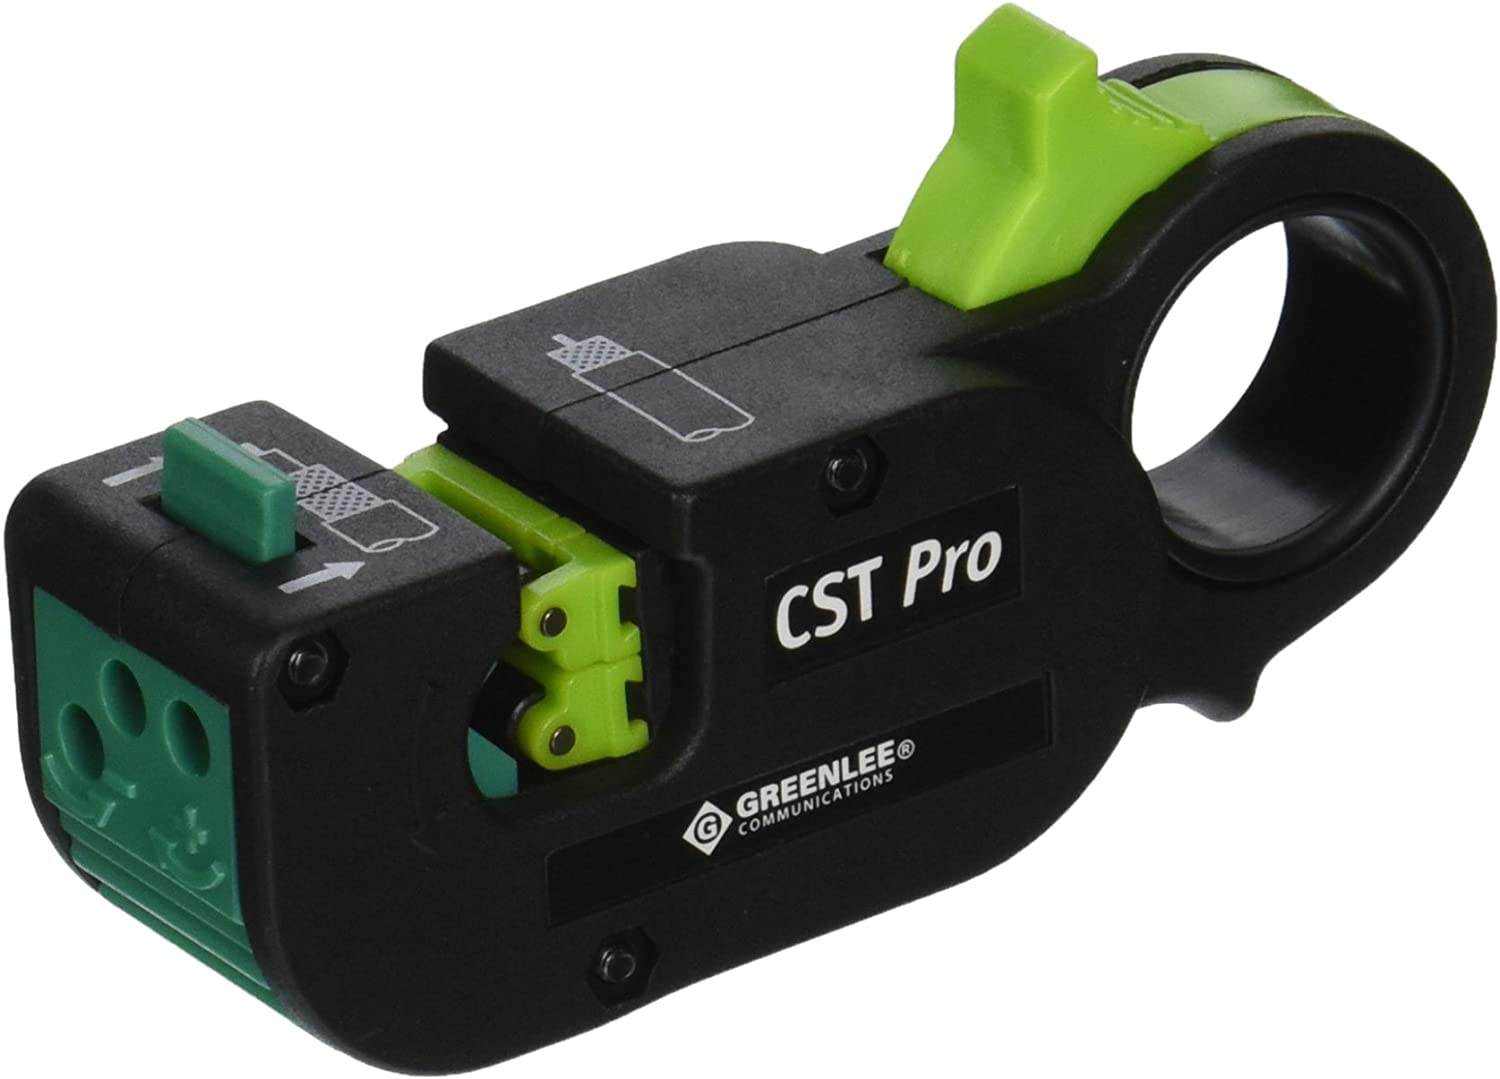 GREENLEE COMMUNICATIONS 1282 CST Pro Black Coax Stripper 3 level